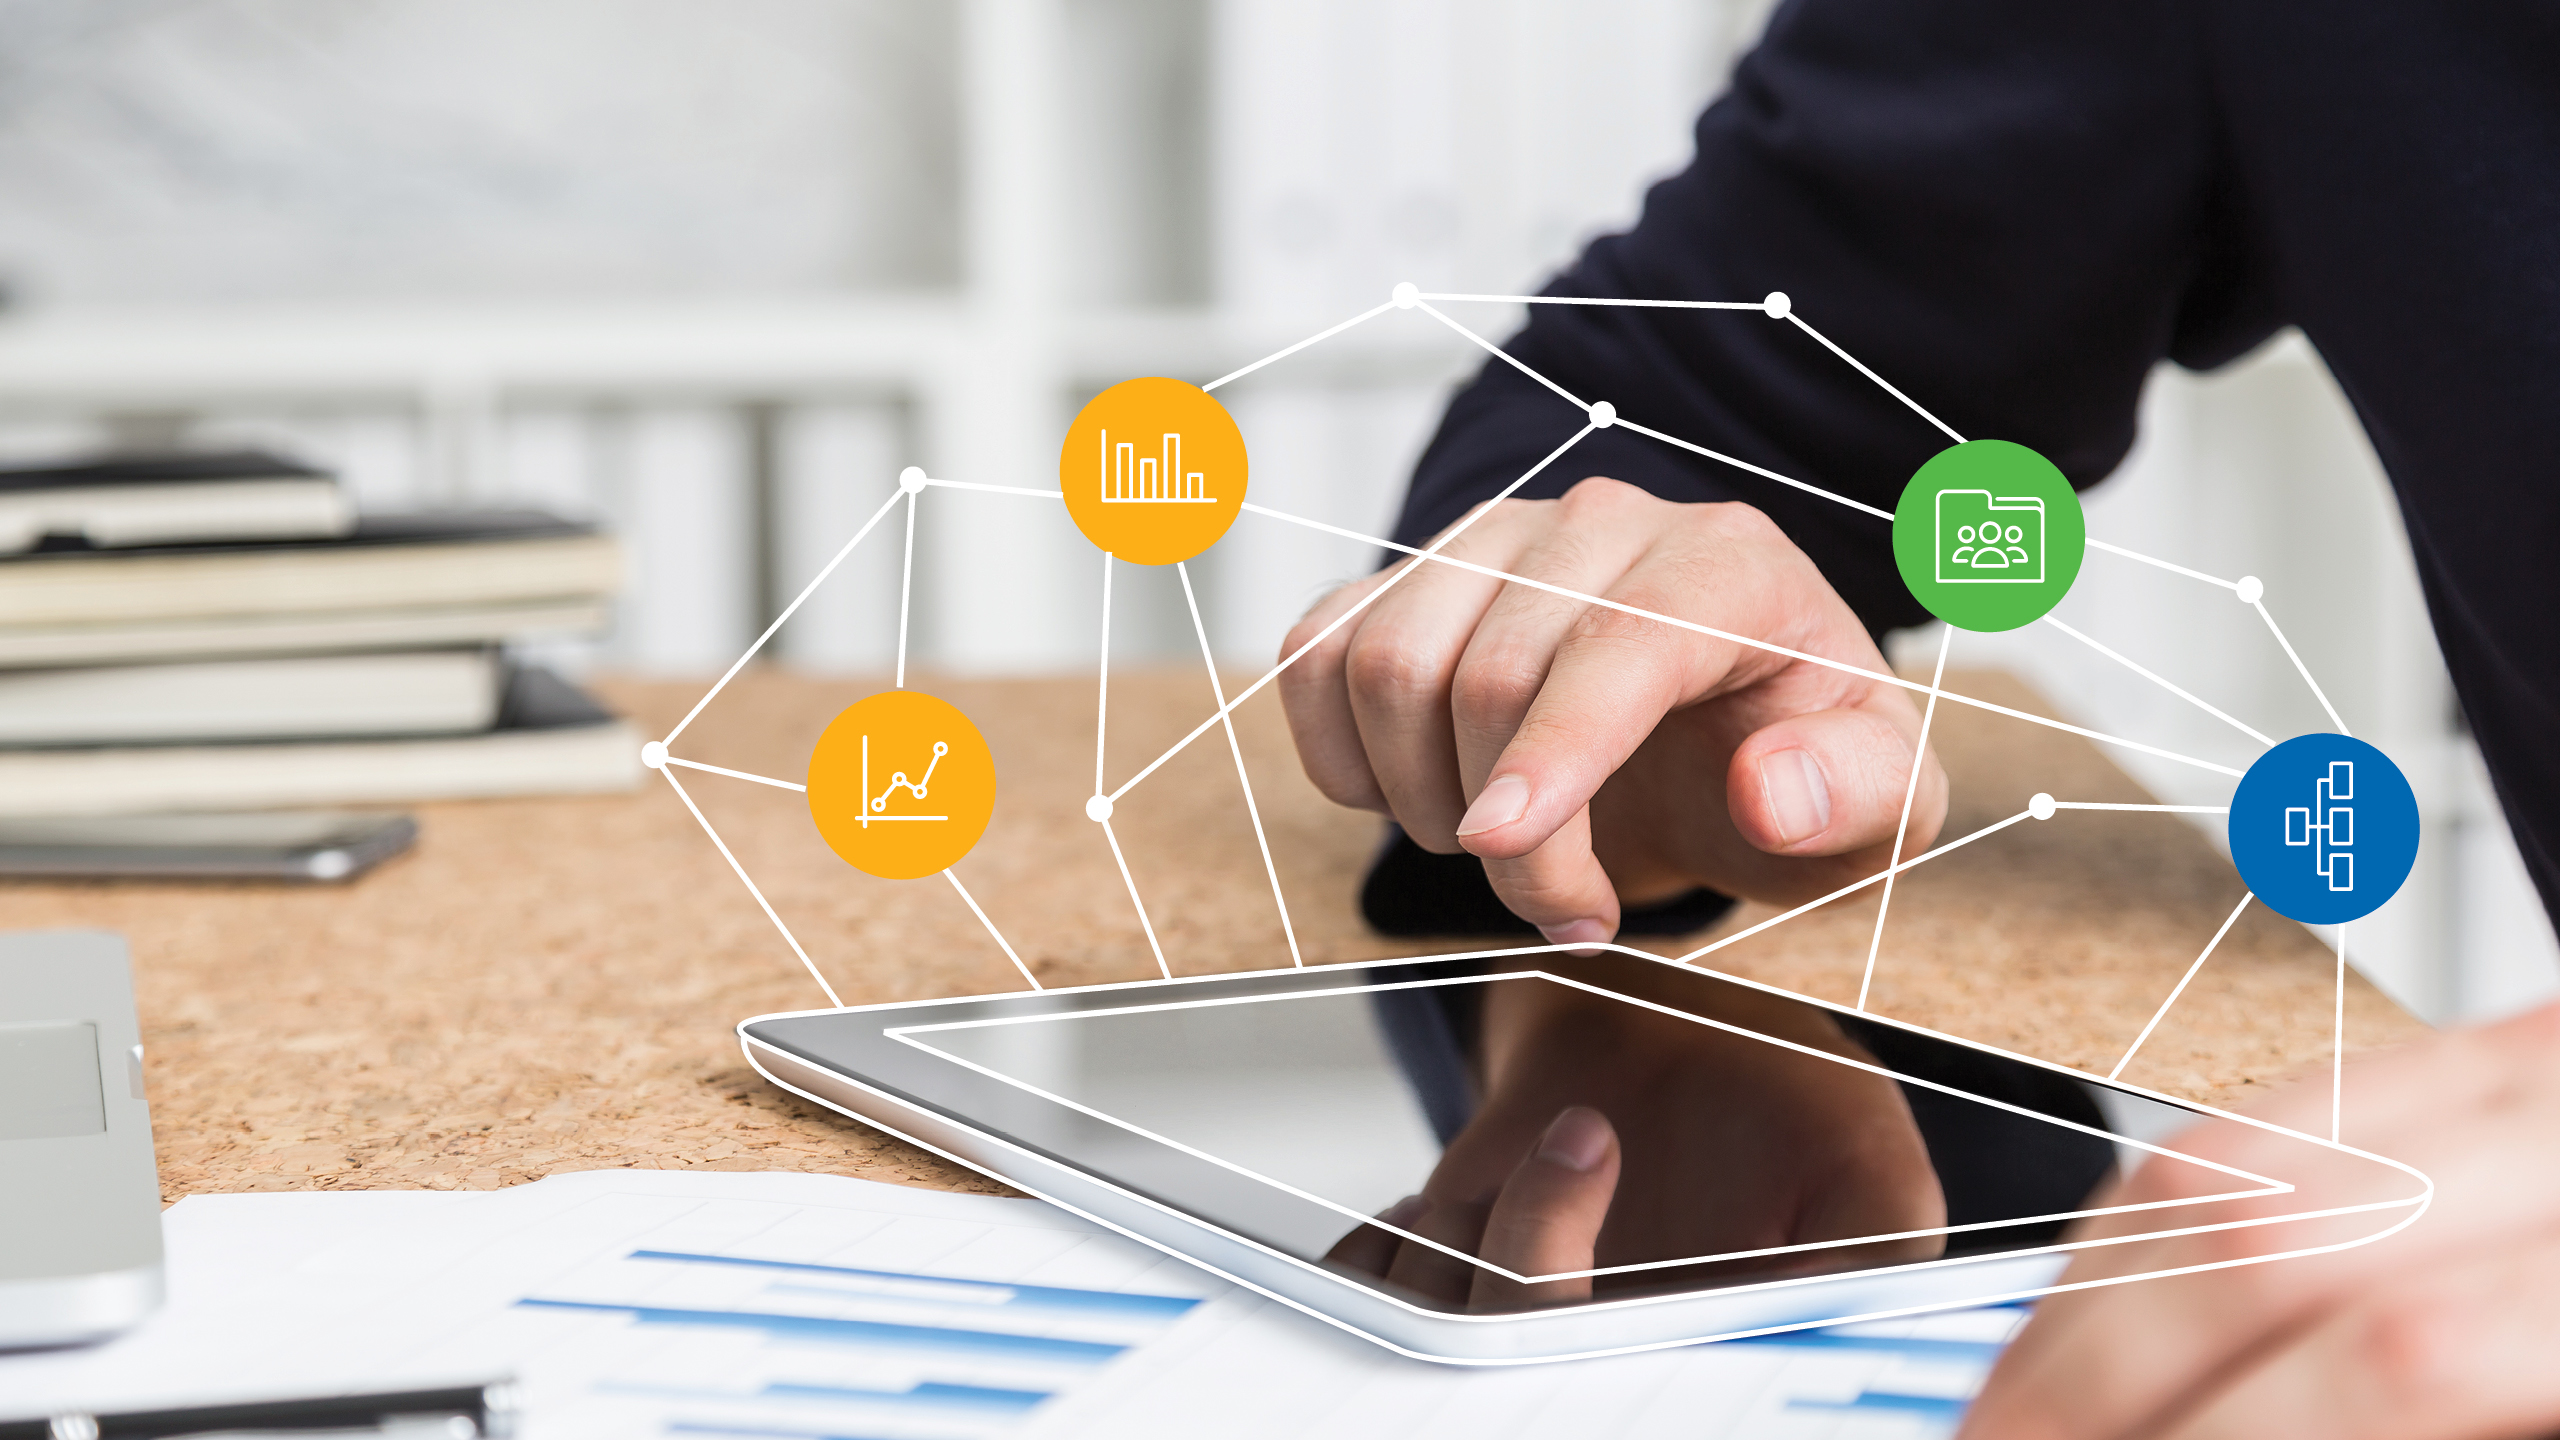 /img/page/word_analysis.jpg